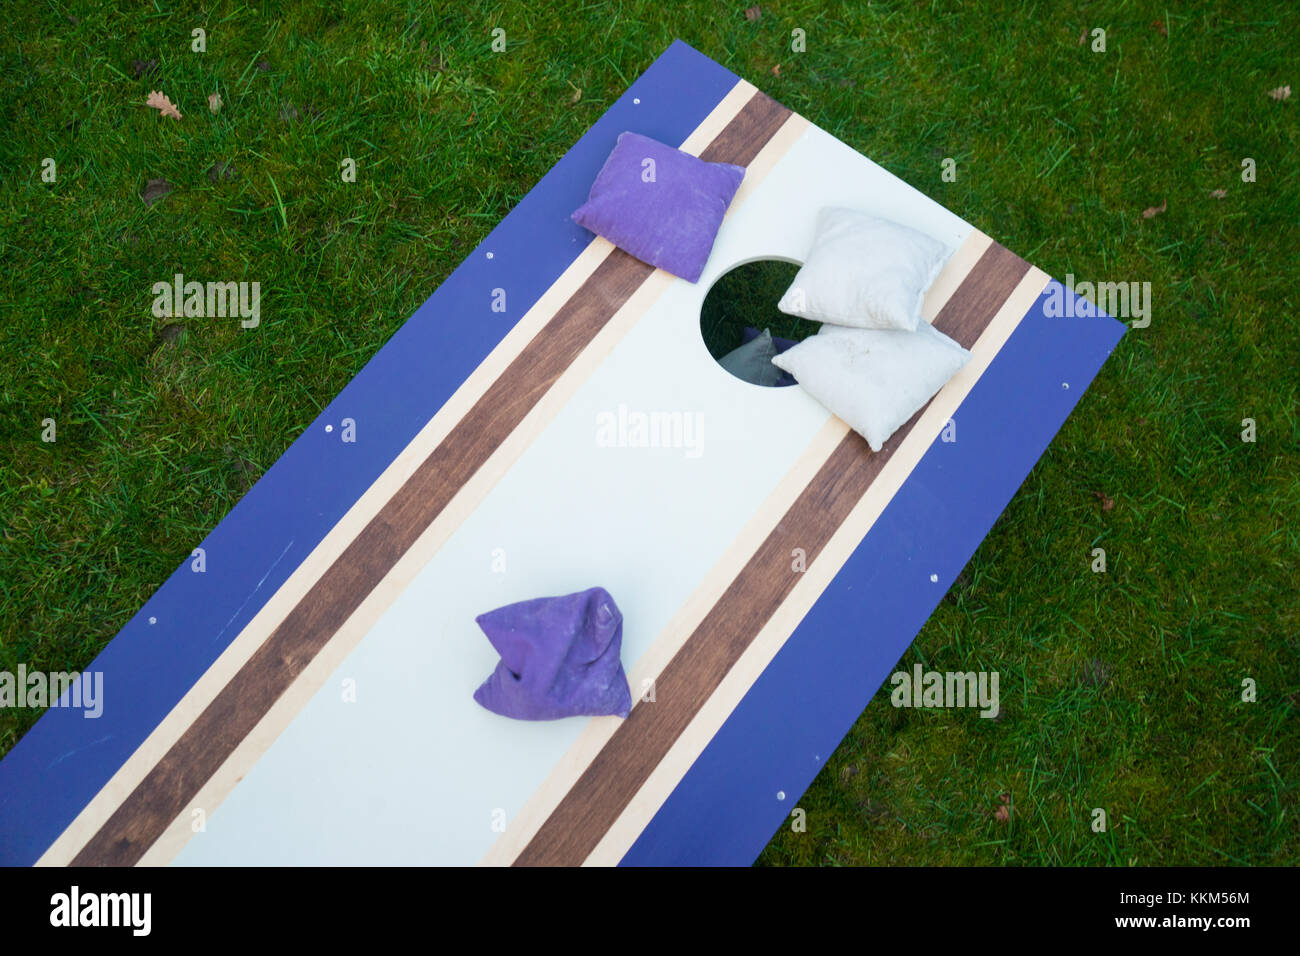 Cornhole beanbag toss wood game board outside on grass - Stock Image